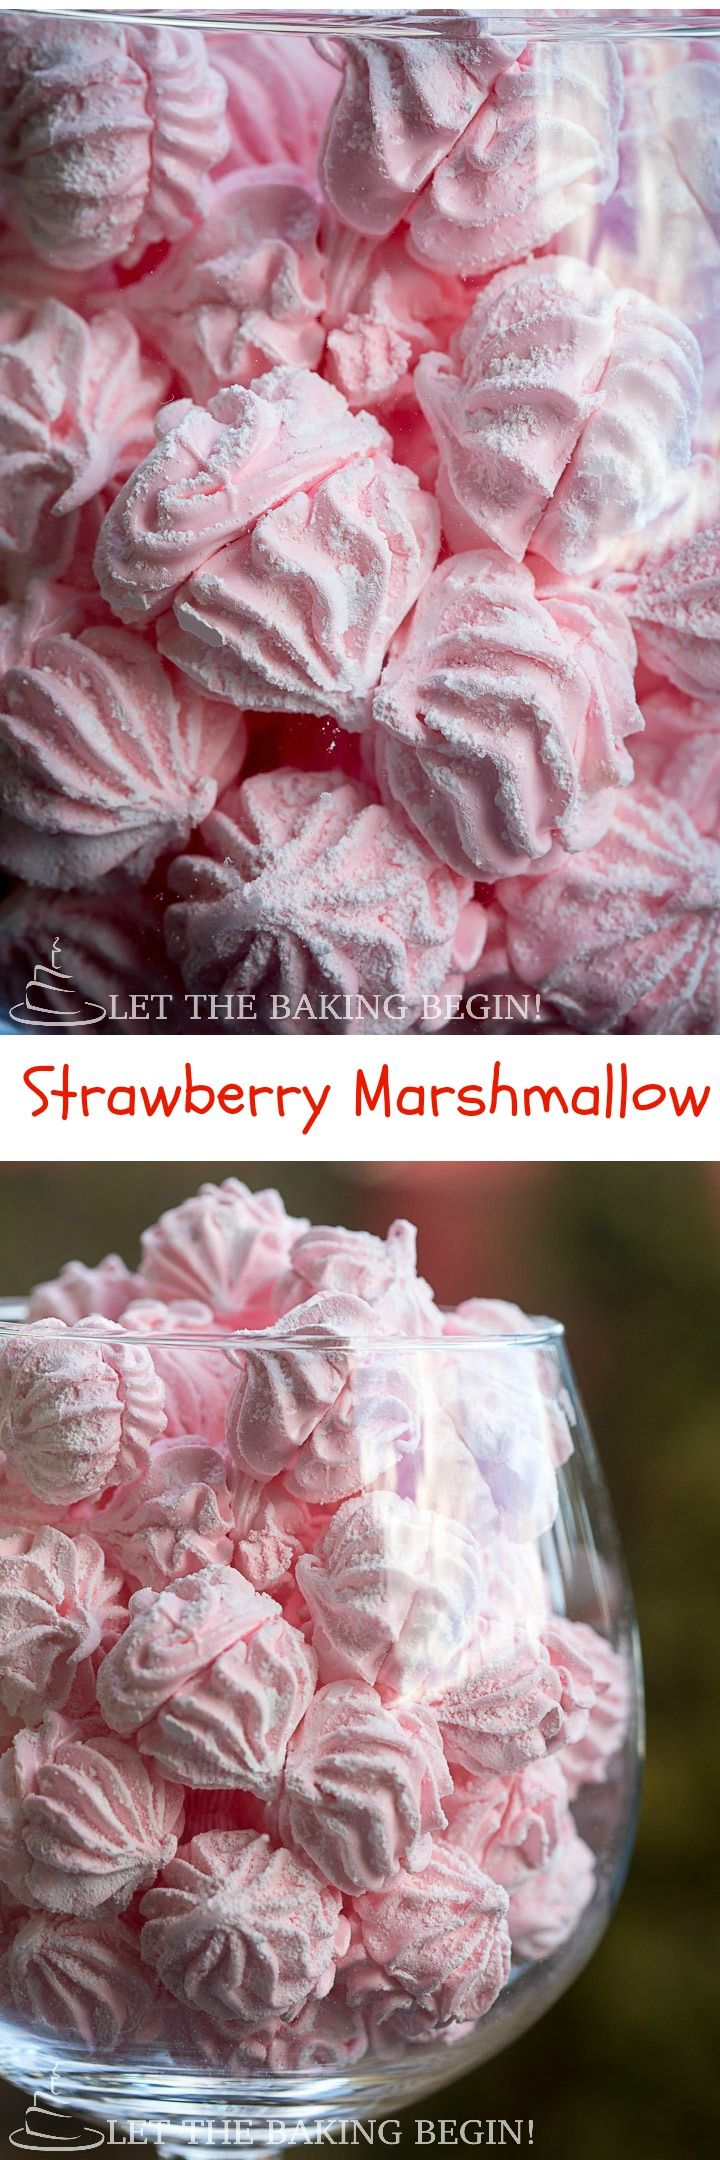 Strawberry Marshmallow -naturally gluten free, light and airy these little confections are perfect for parties, or as a light dessert treat after dinner